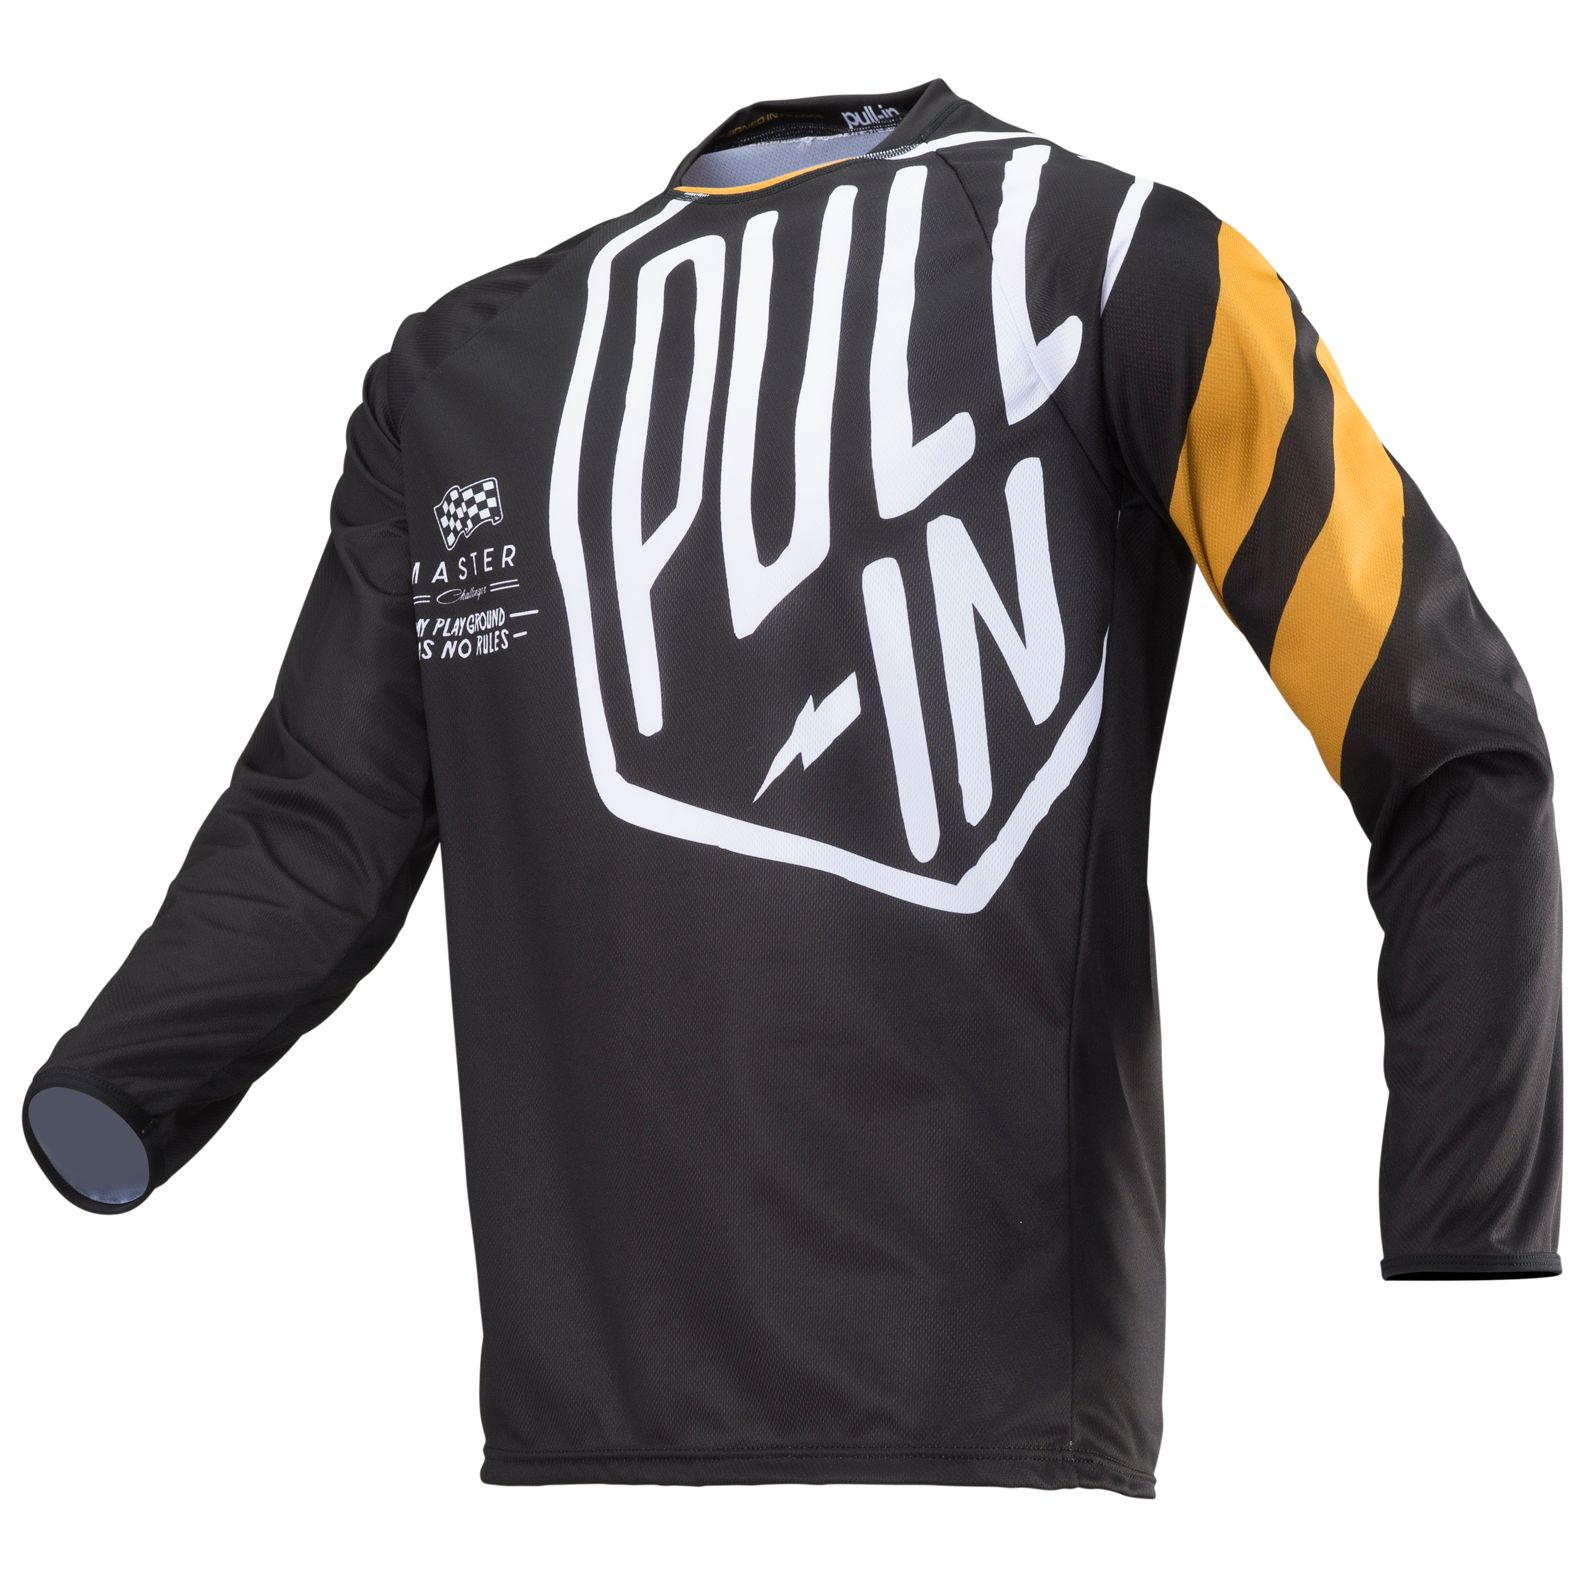 Maillot cross Pull-in MASTER BLACK GOLD 2019